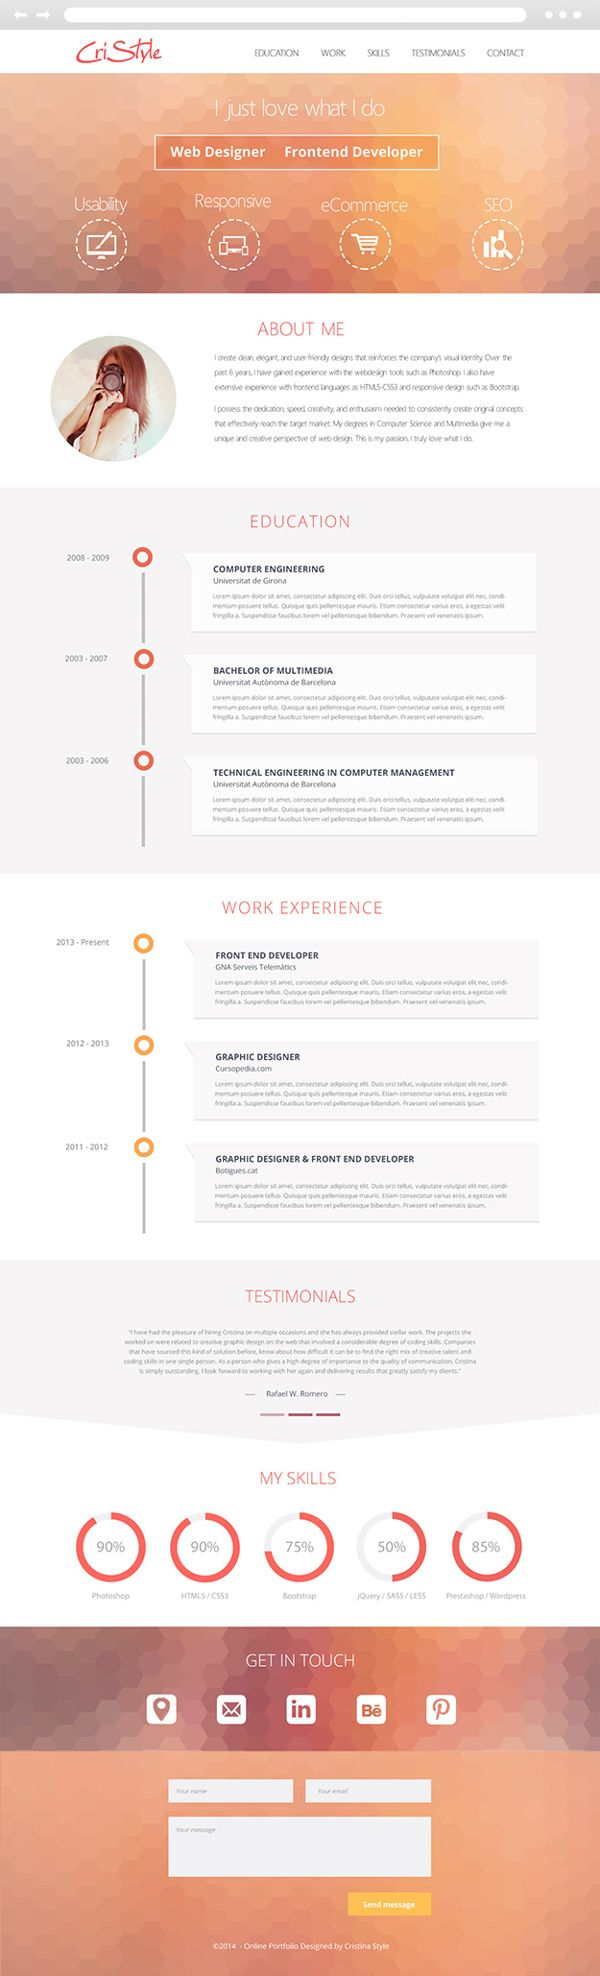 beautiful resume design by cristina stela  via behance